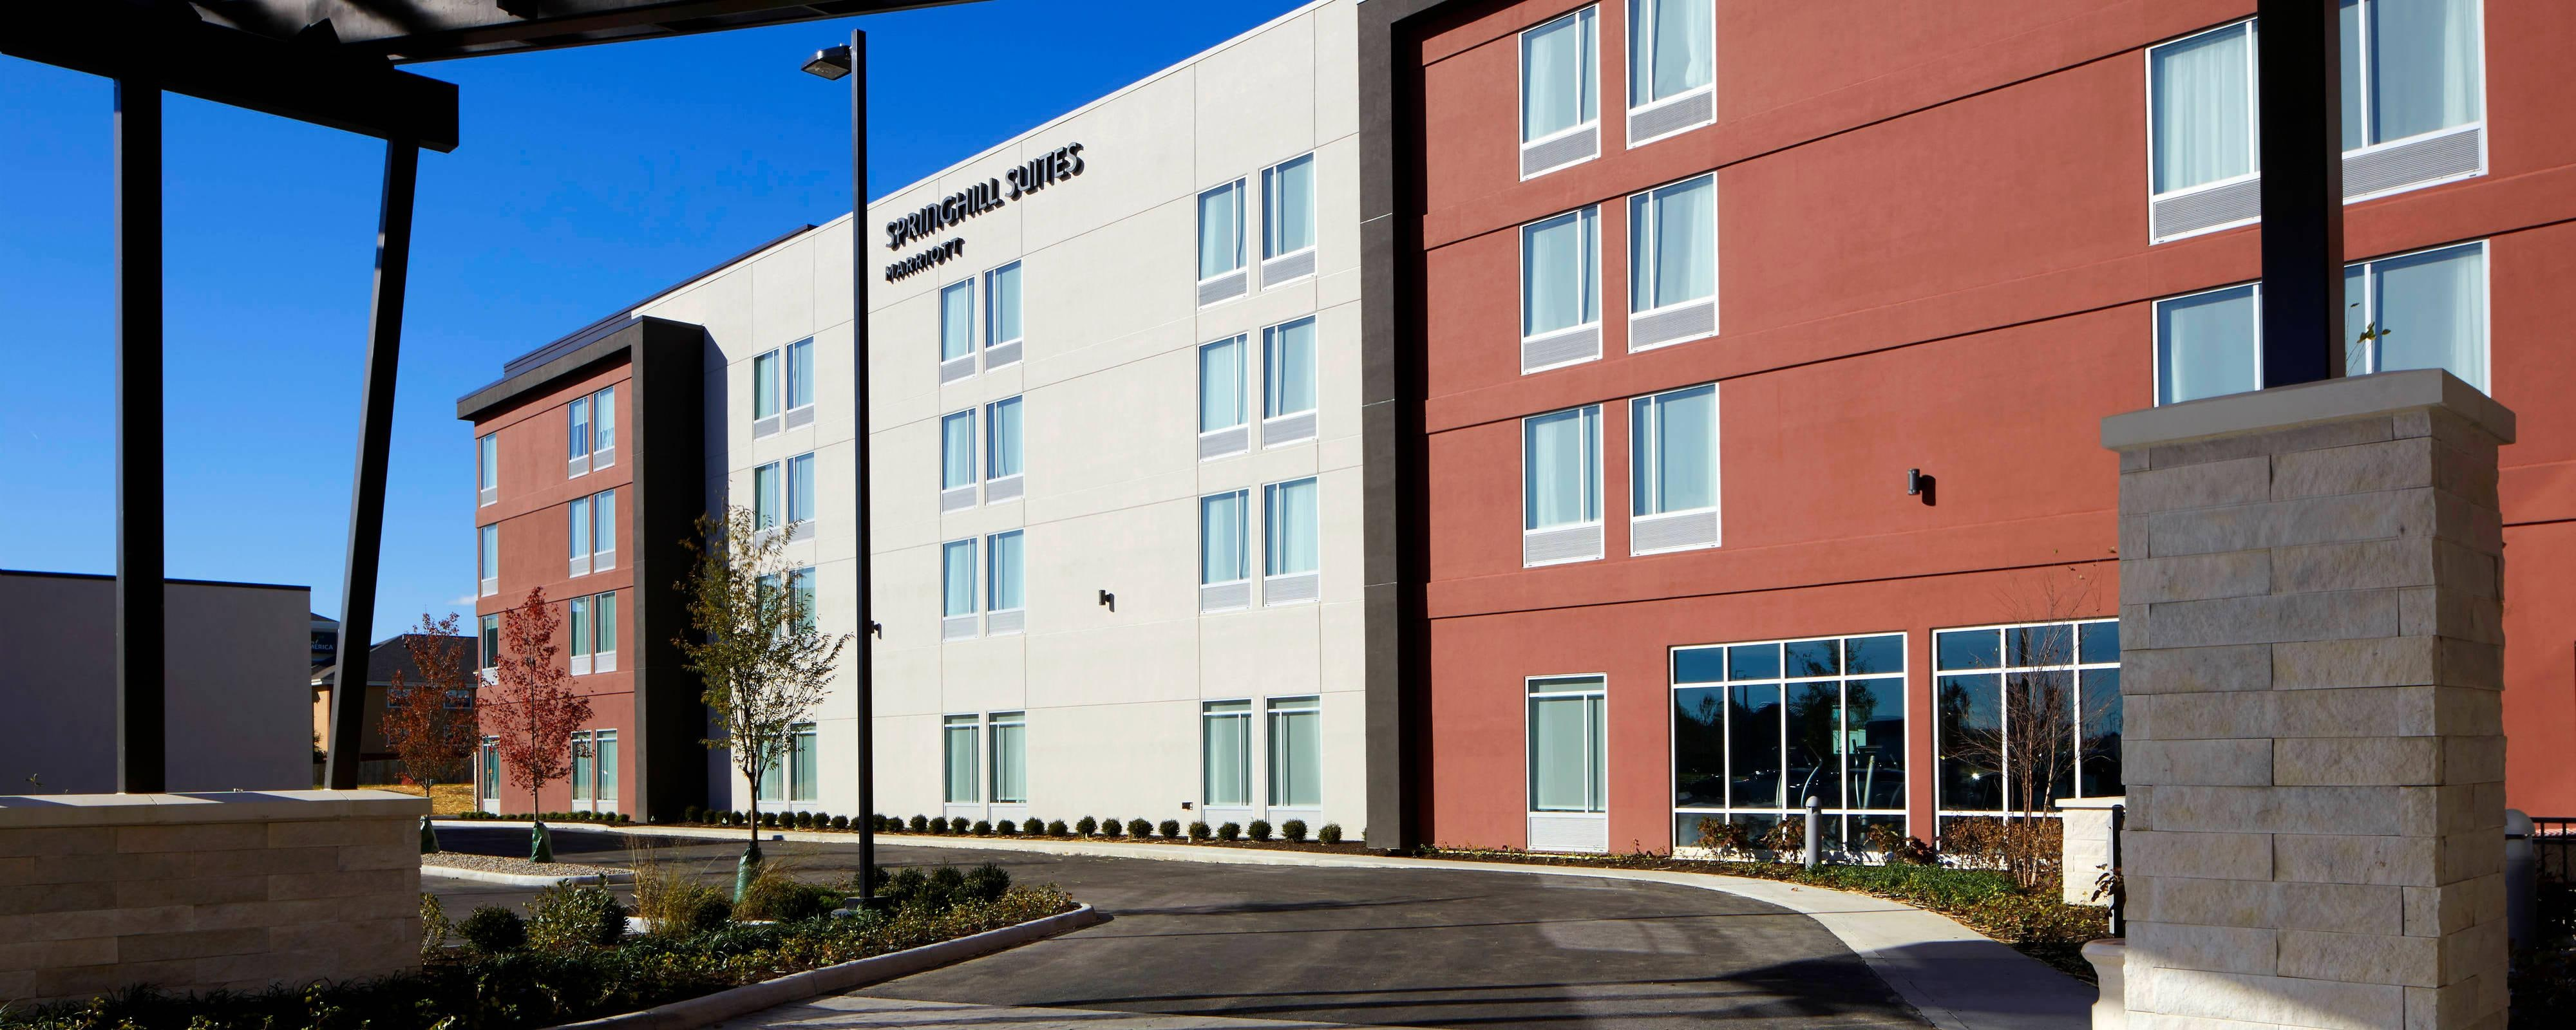 columbus easton hotels springhill suites columbus easton area hotel rh marriott com